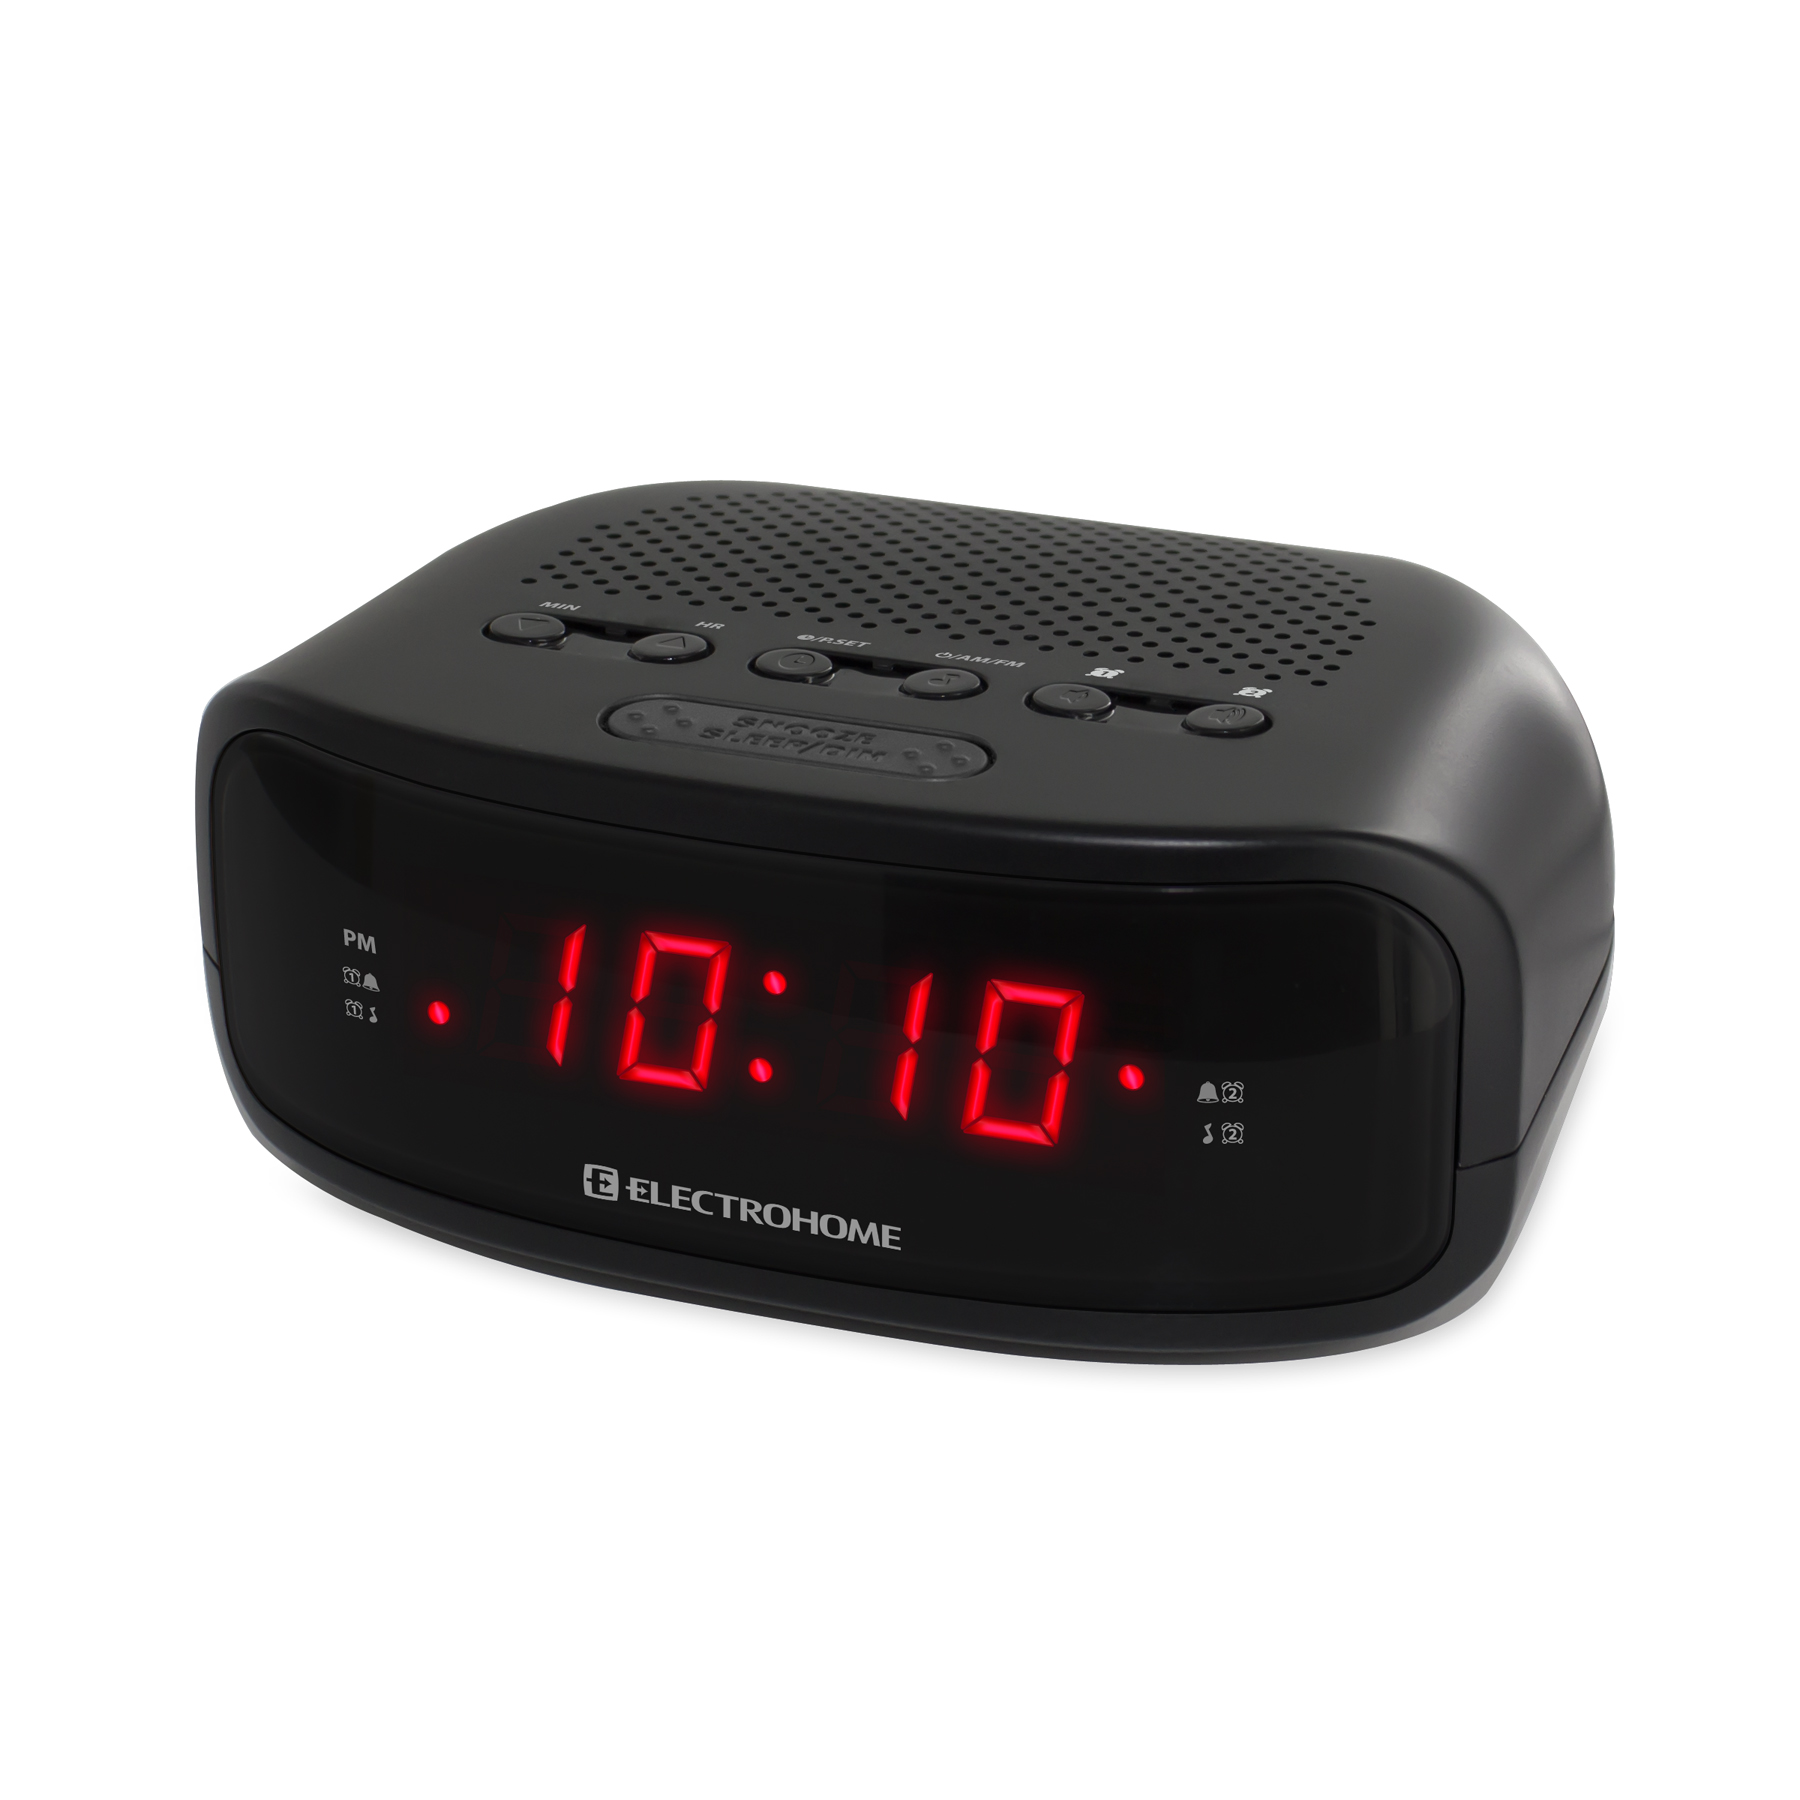 Electrohome Digital AM/FM Clock Radio with Battery Backup & Dual Alarm (EAAC200) at Sears.com